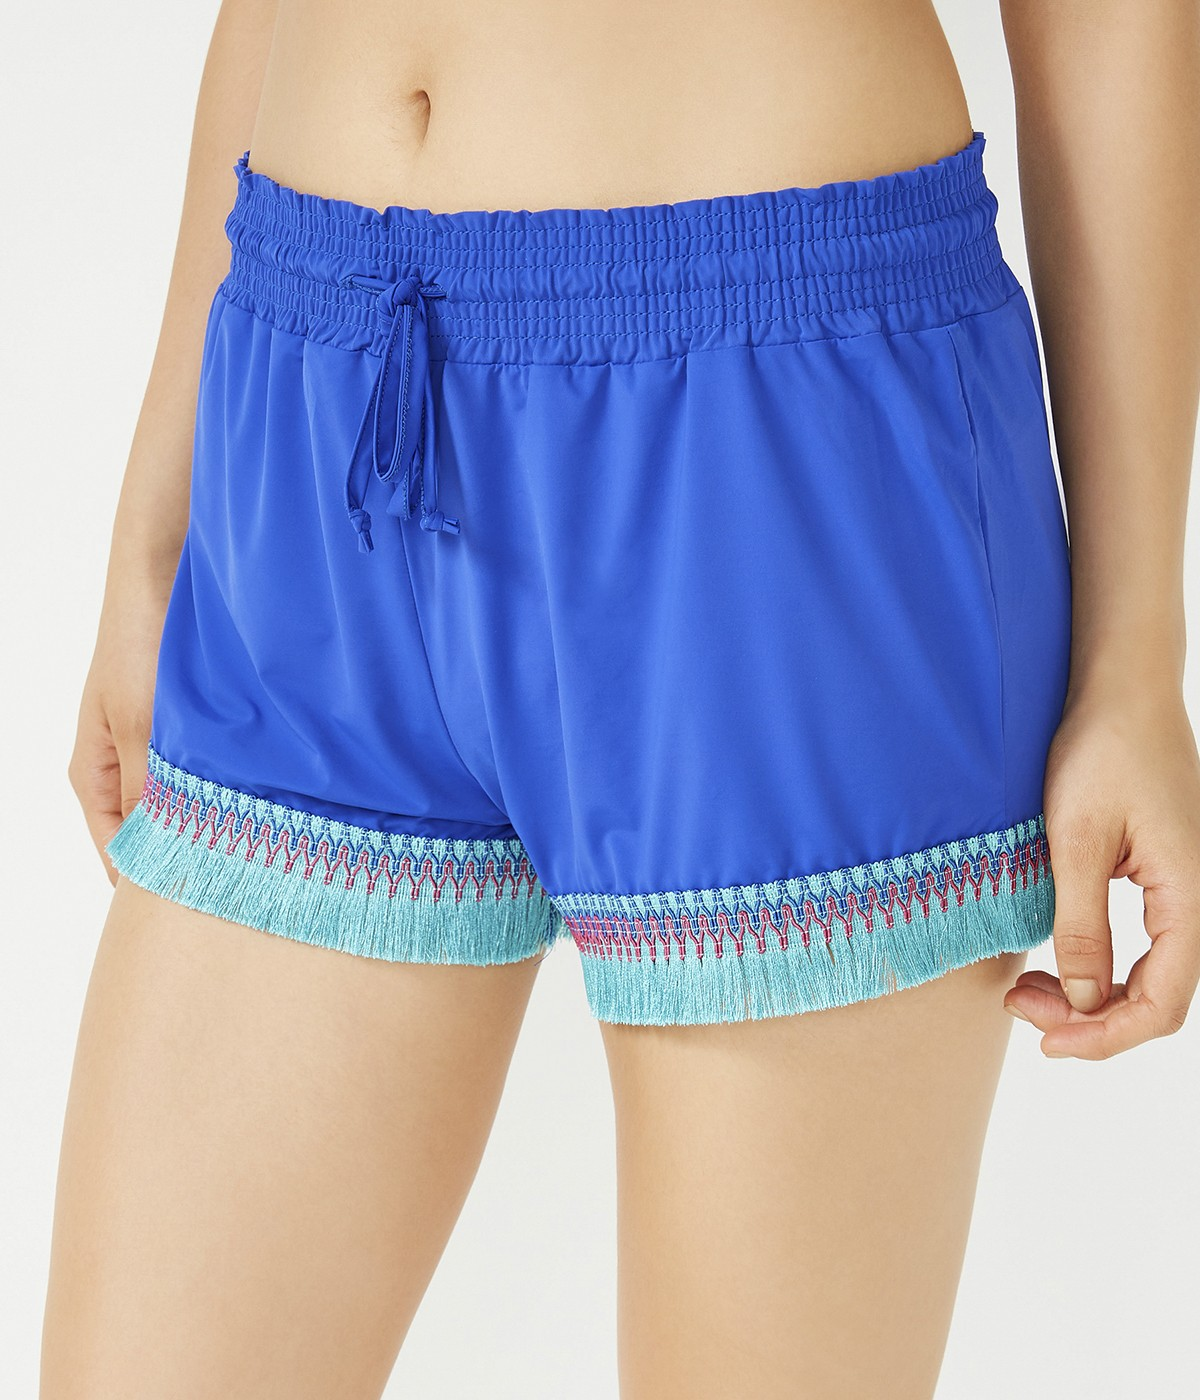 Marine Trimmed Shorts